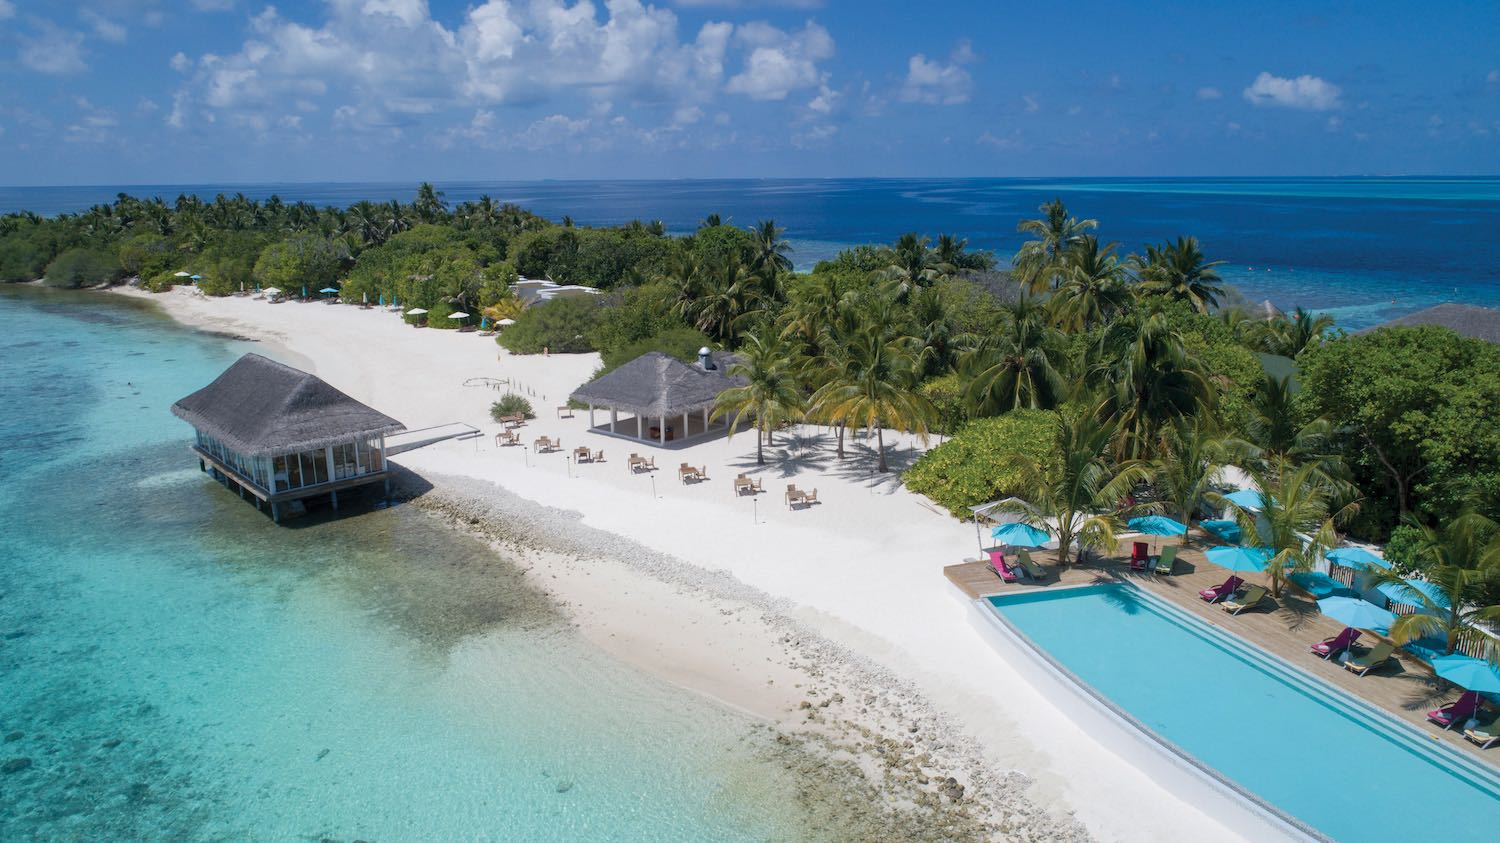 maldives-oblu-by-atmosphere-at-helengeli-adult-only-pool-10-holiday-honeymoon-vacation-invite-to-paradise.jpg